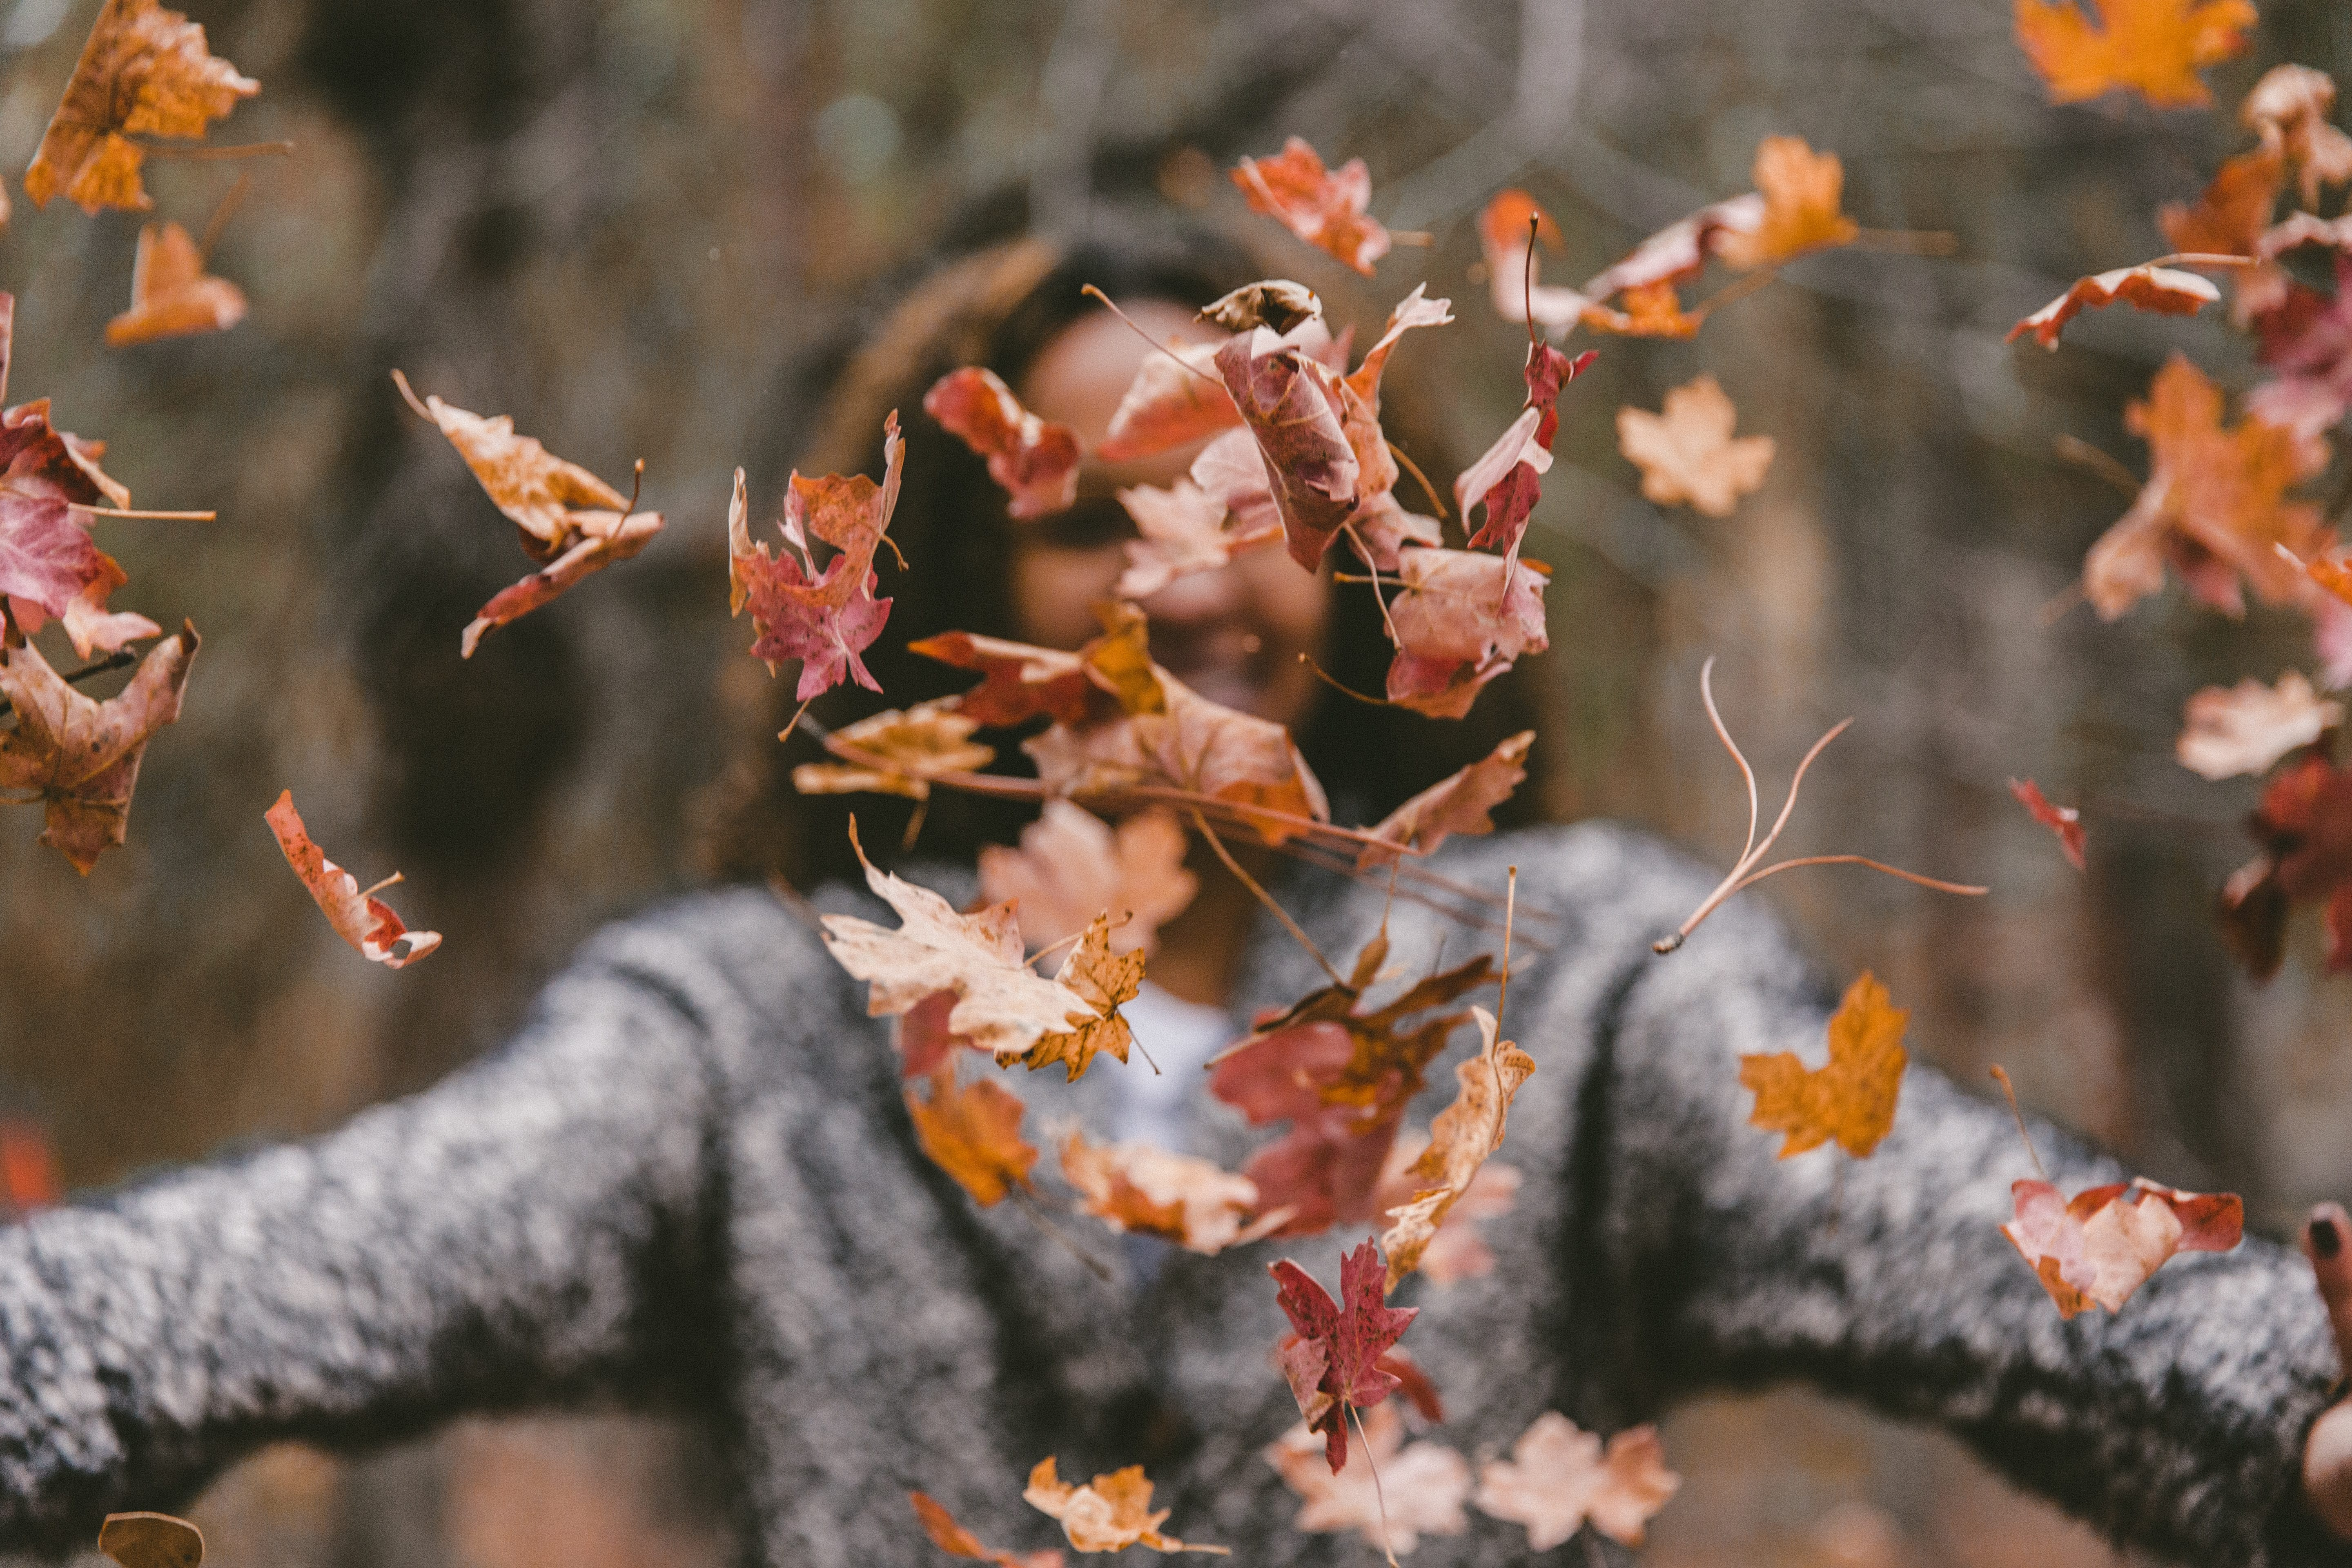 Woman in grey sweater throwing orange leaves in the air; image by Jakob Owens, via Unsplash.com.